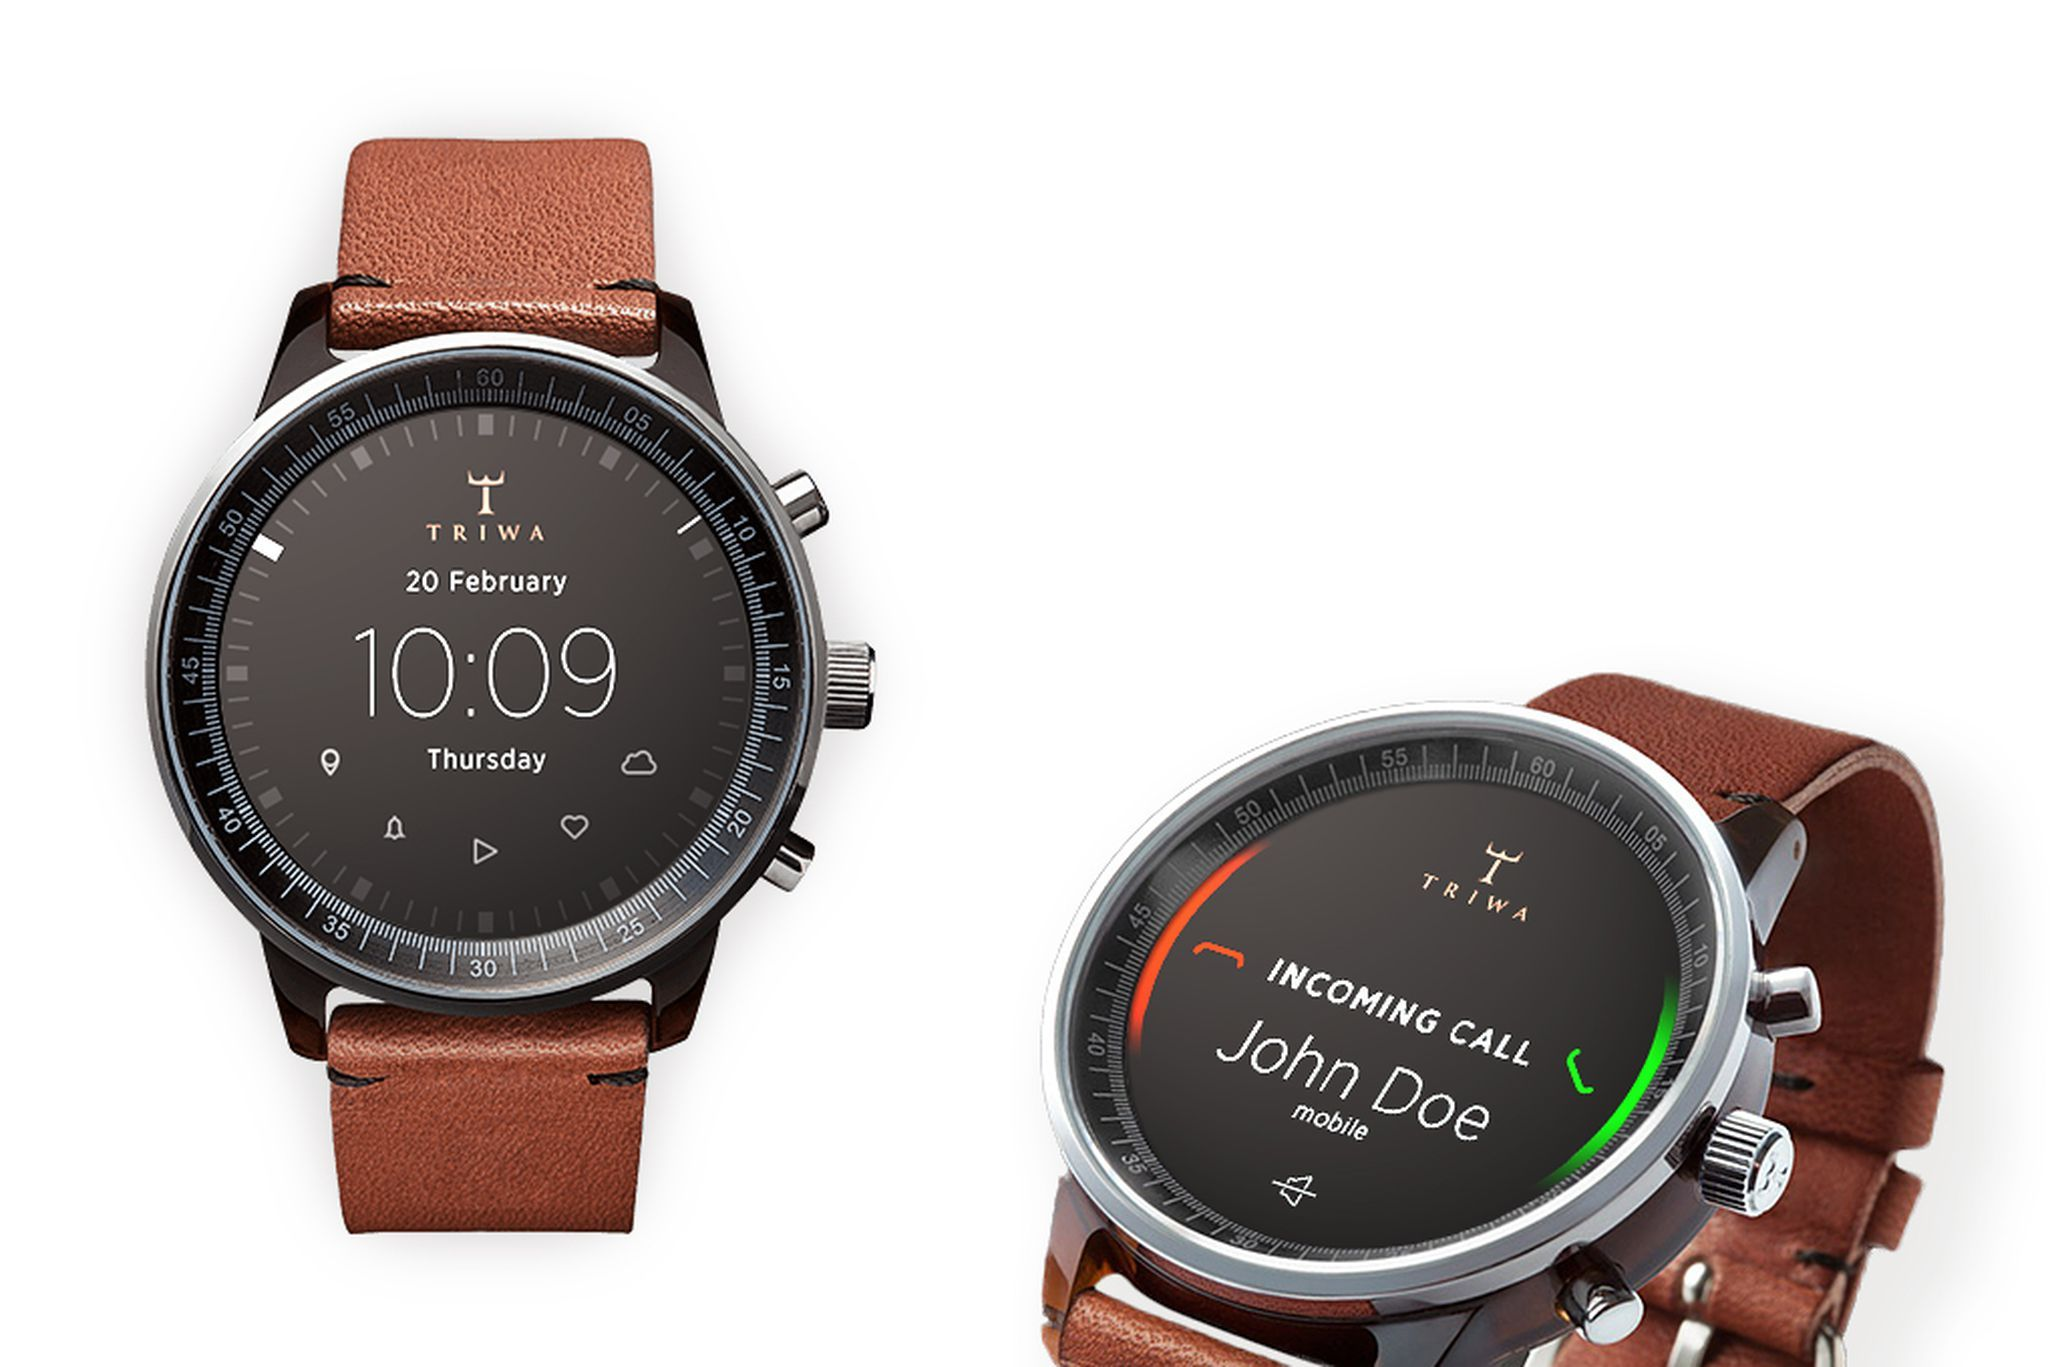 Why can't great smartwatches look like normal watches? Smartwatches, for the most part, can be divided into two categories: vague approximations of the future like the Pebble, Gear, and Gear Fit,...